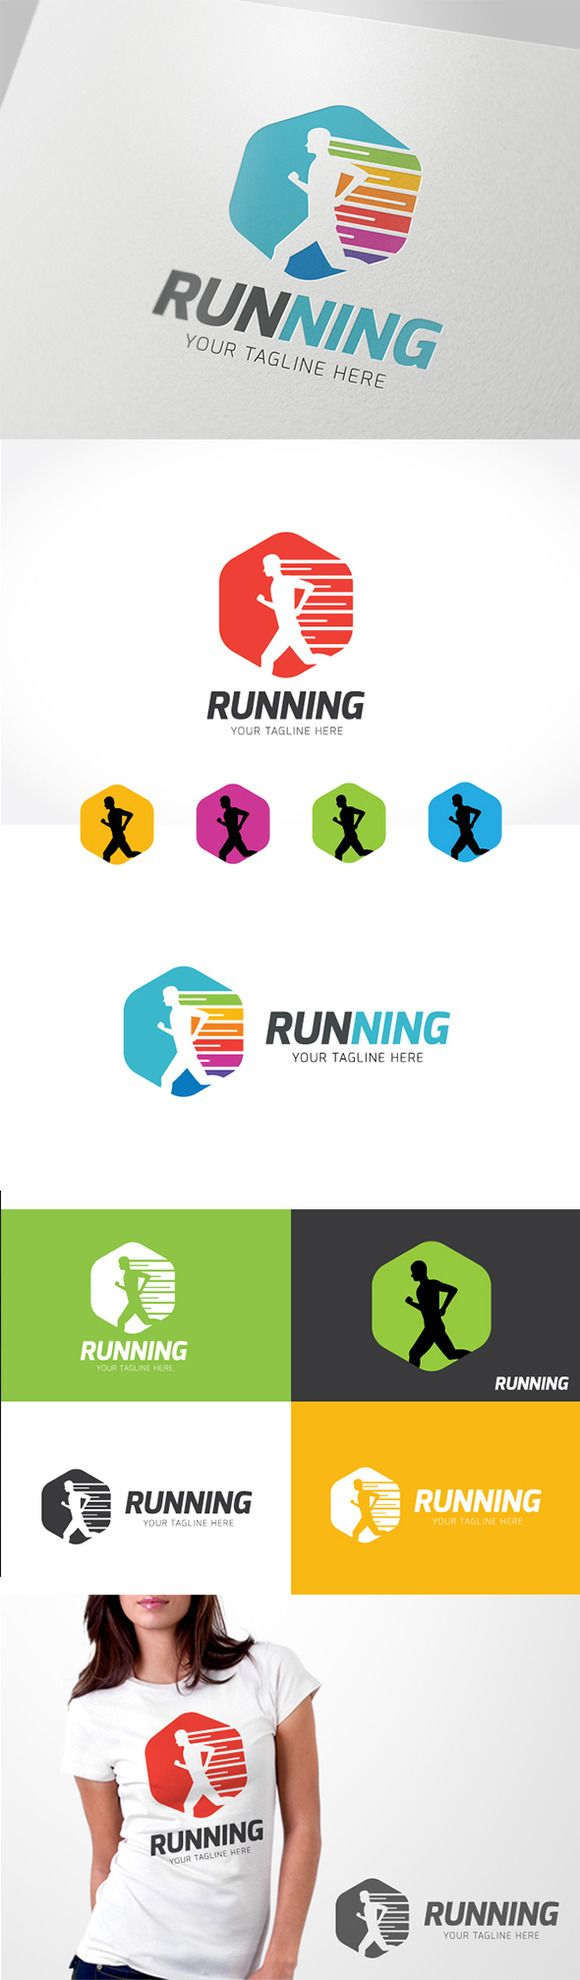 Olympic rings logo rio 2016 olympics logo designed by fred gelli - Run Logo Templates Logo Template Features 100 Scalable Vector Files Everything Is Editable Everything I By Super Pig Shop